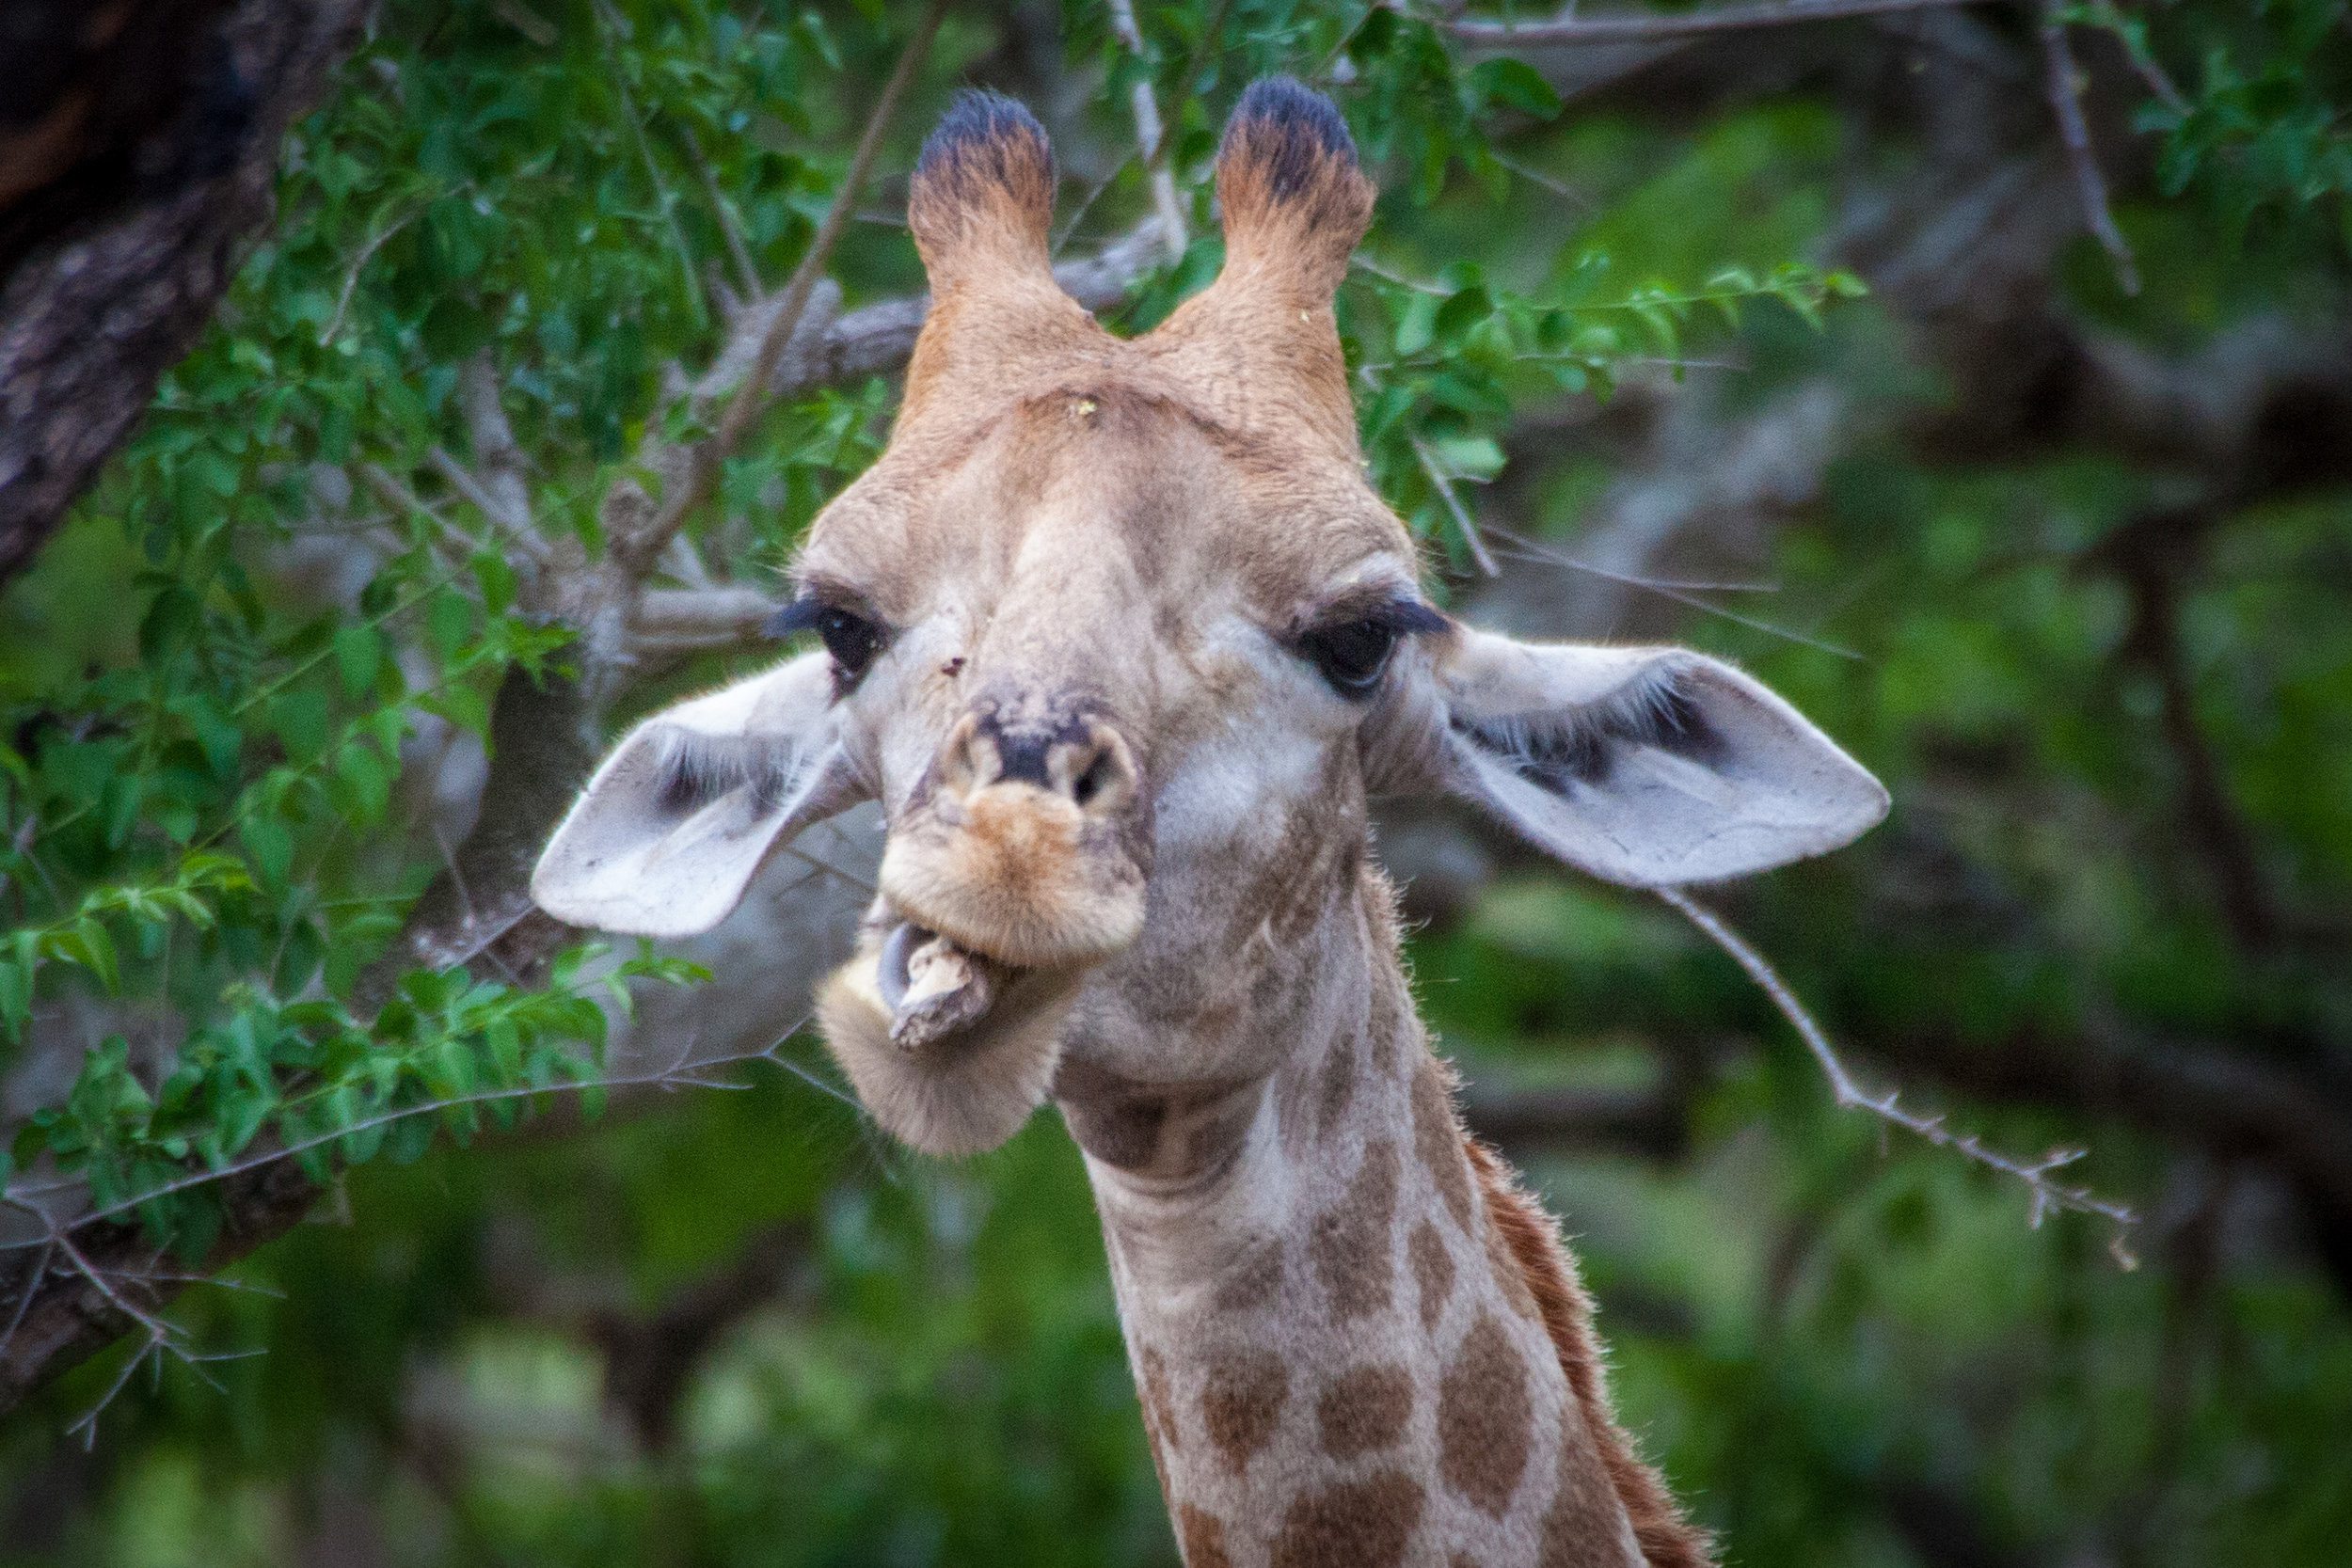 A South African giraffe (G. c. giraffa) at Ndumo Reserve, KwaZulu-Natal South Africa. This giraffe is sucking on a bone to supplement its diet with minerals. This is called osteophagia.